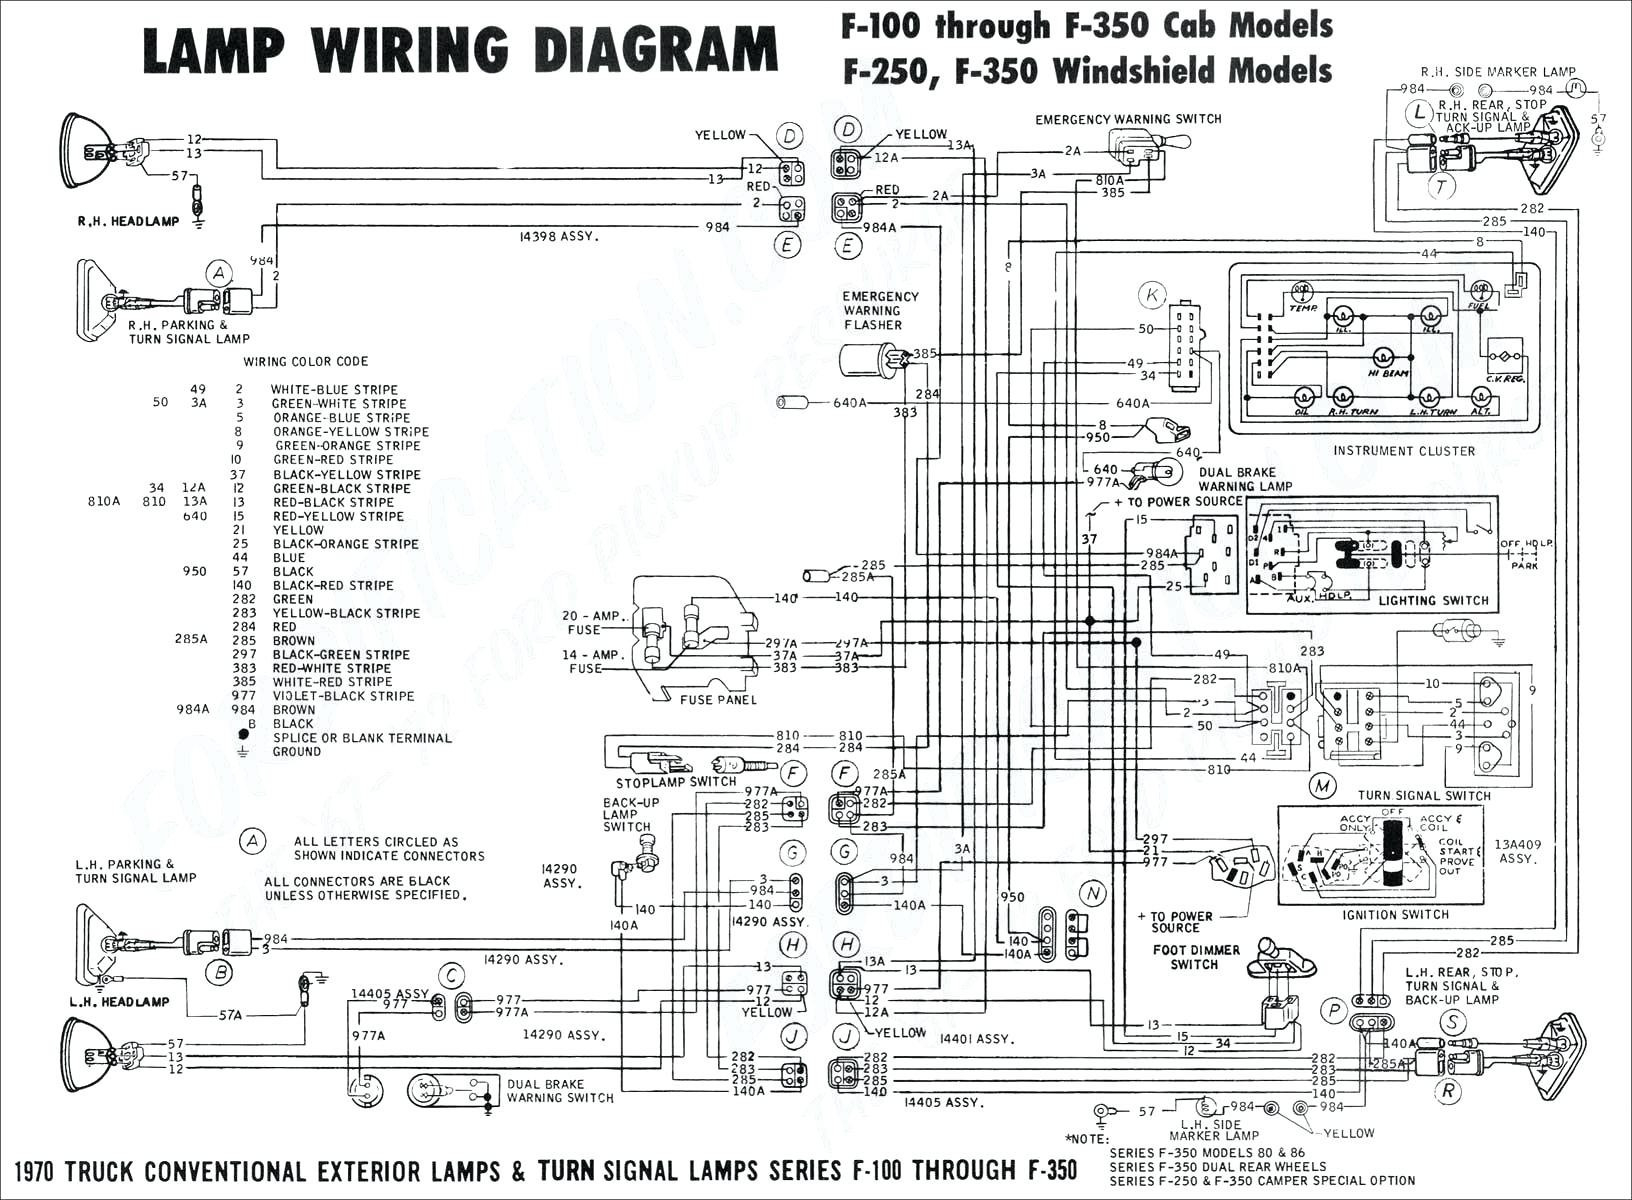 2010 flex wiring diagram experts of wiring diagram u2022 rh evilcloud co uk  Flex a Lite Fan Controller Wiring Diagram Flex Fan Light Controller Wiring